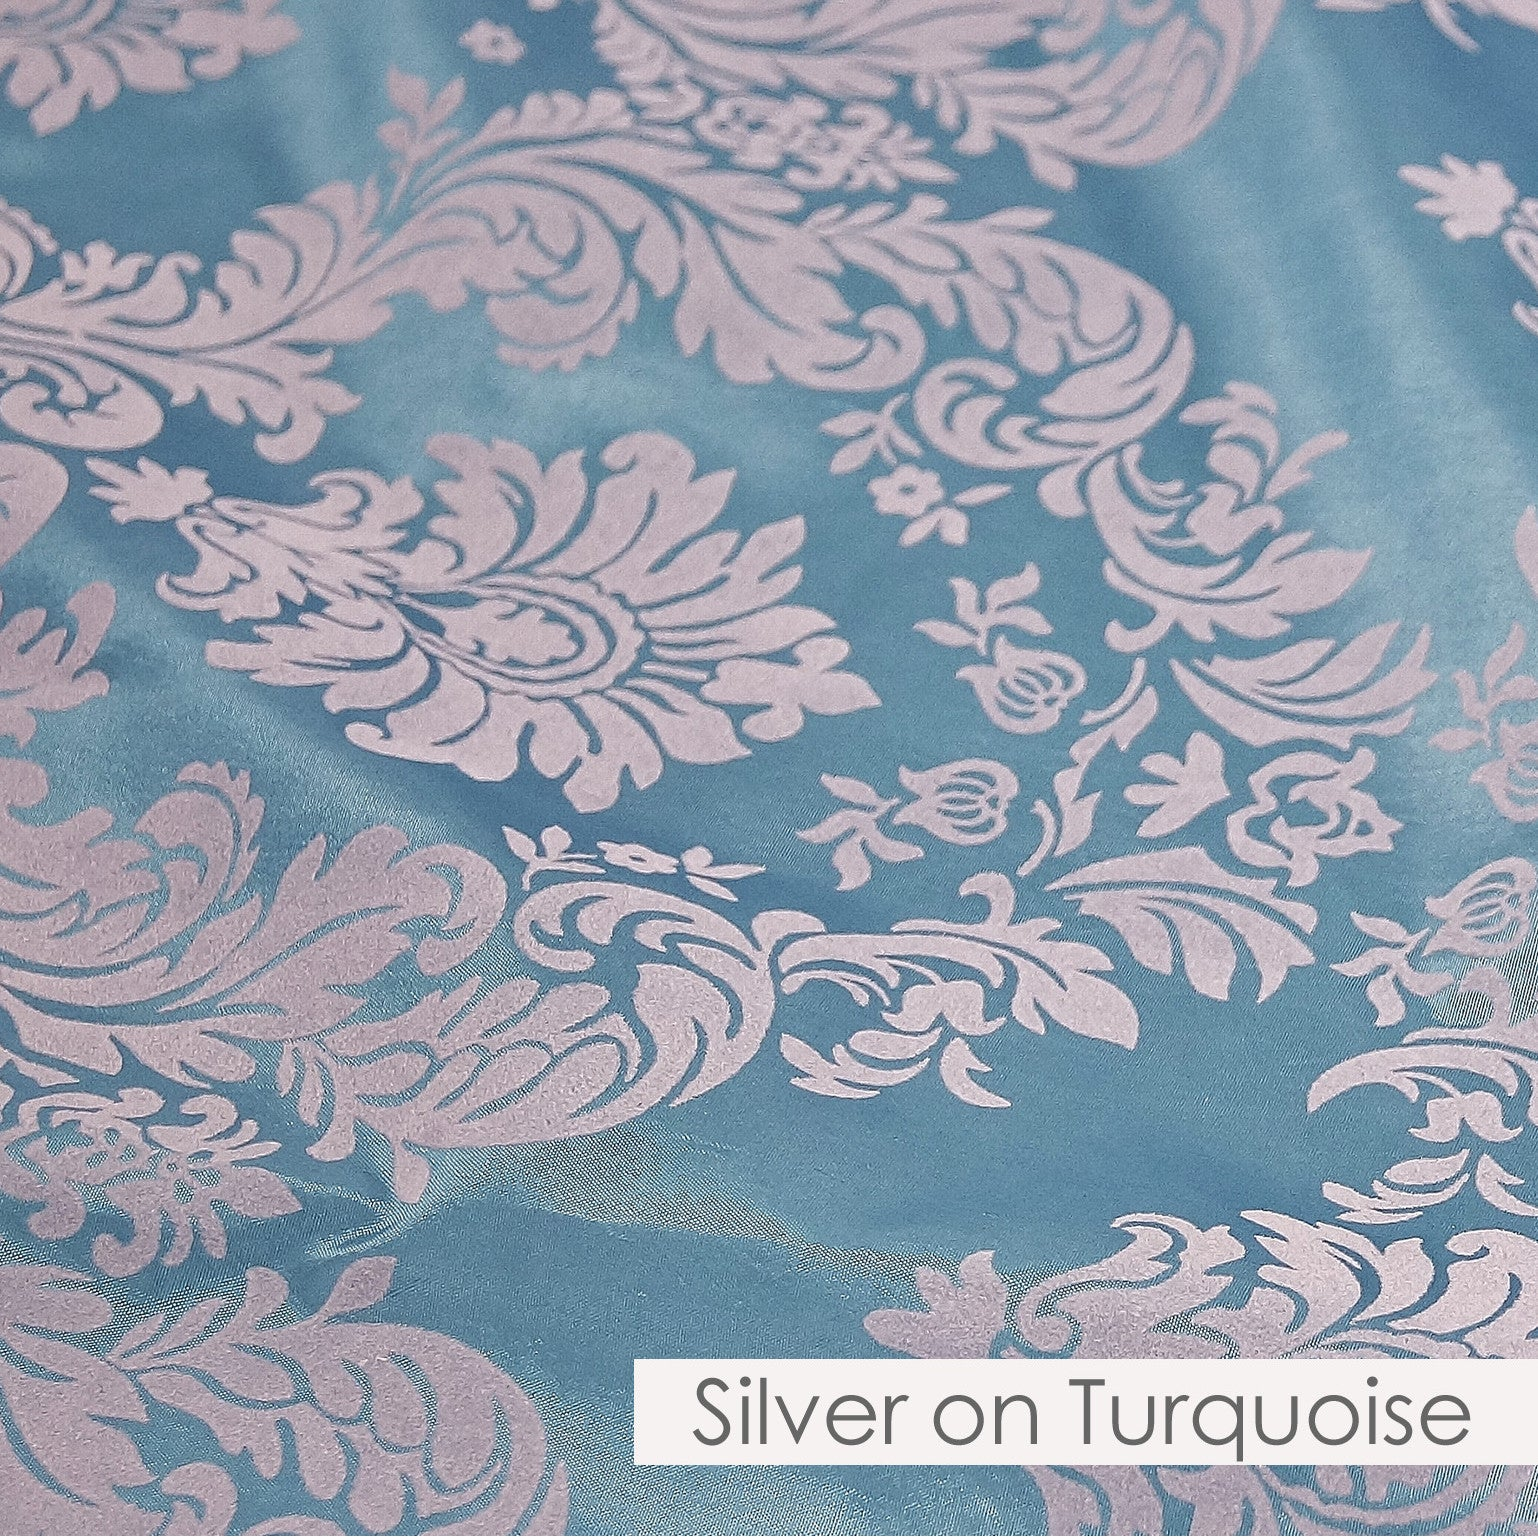 SILVER ON TURQUOISE